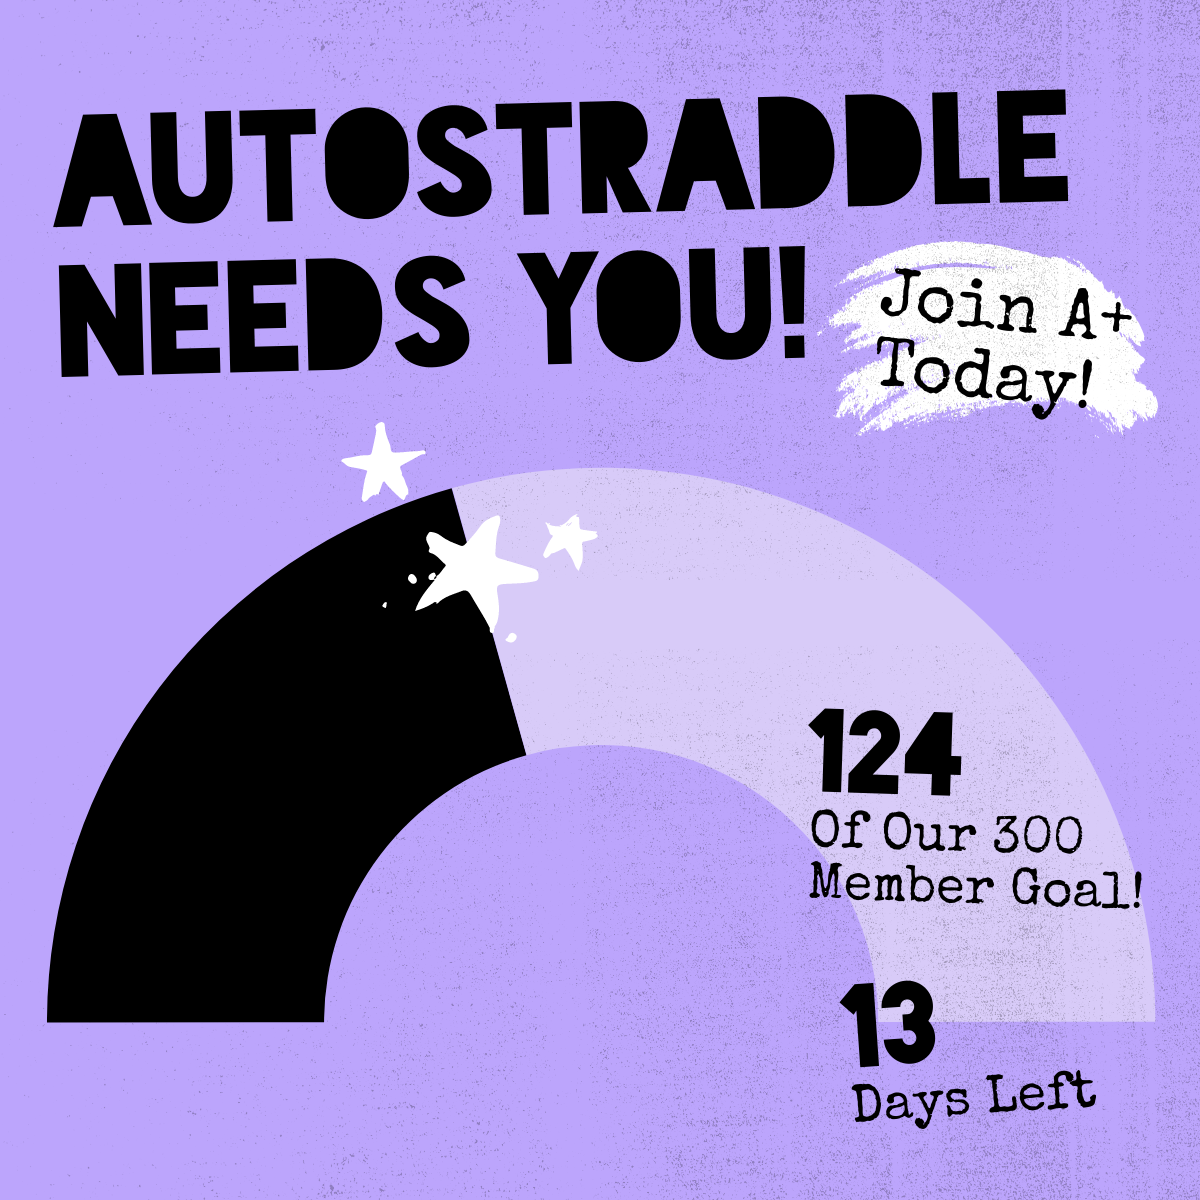 Autostraddle Needs You! Join A+ Today! 124 of our 300 Member Goal! 13 Days Left